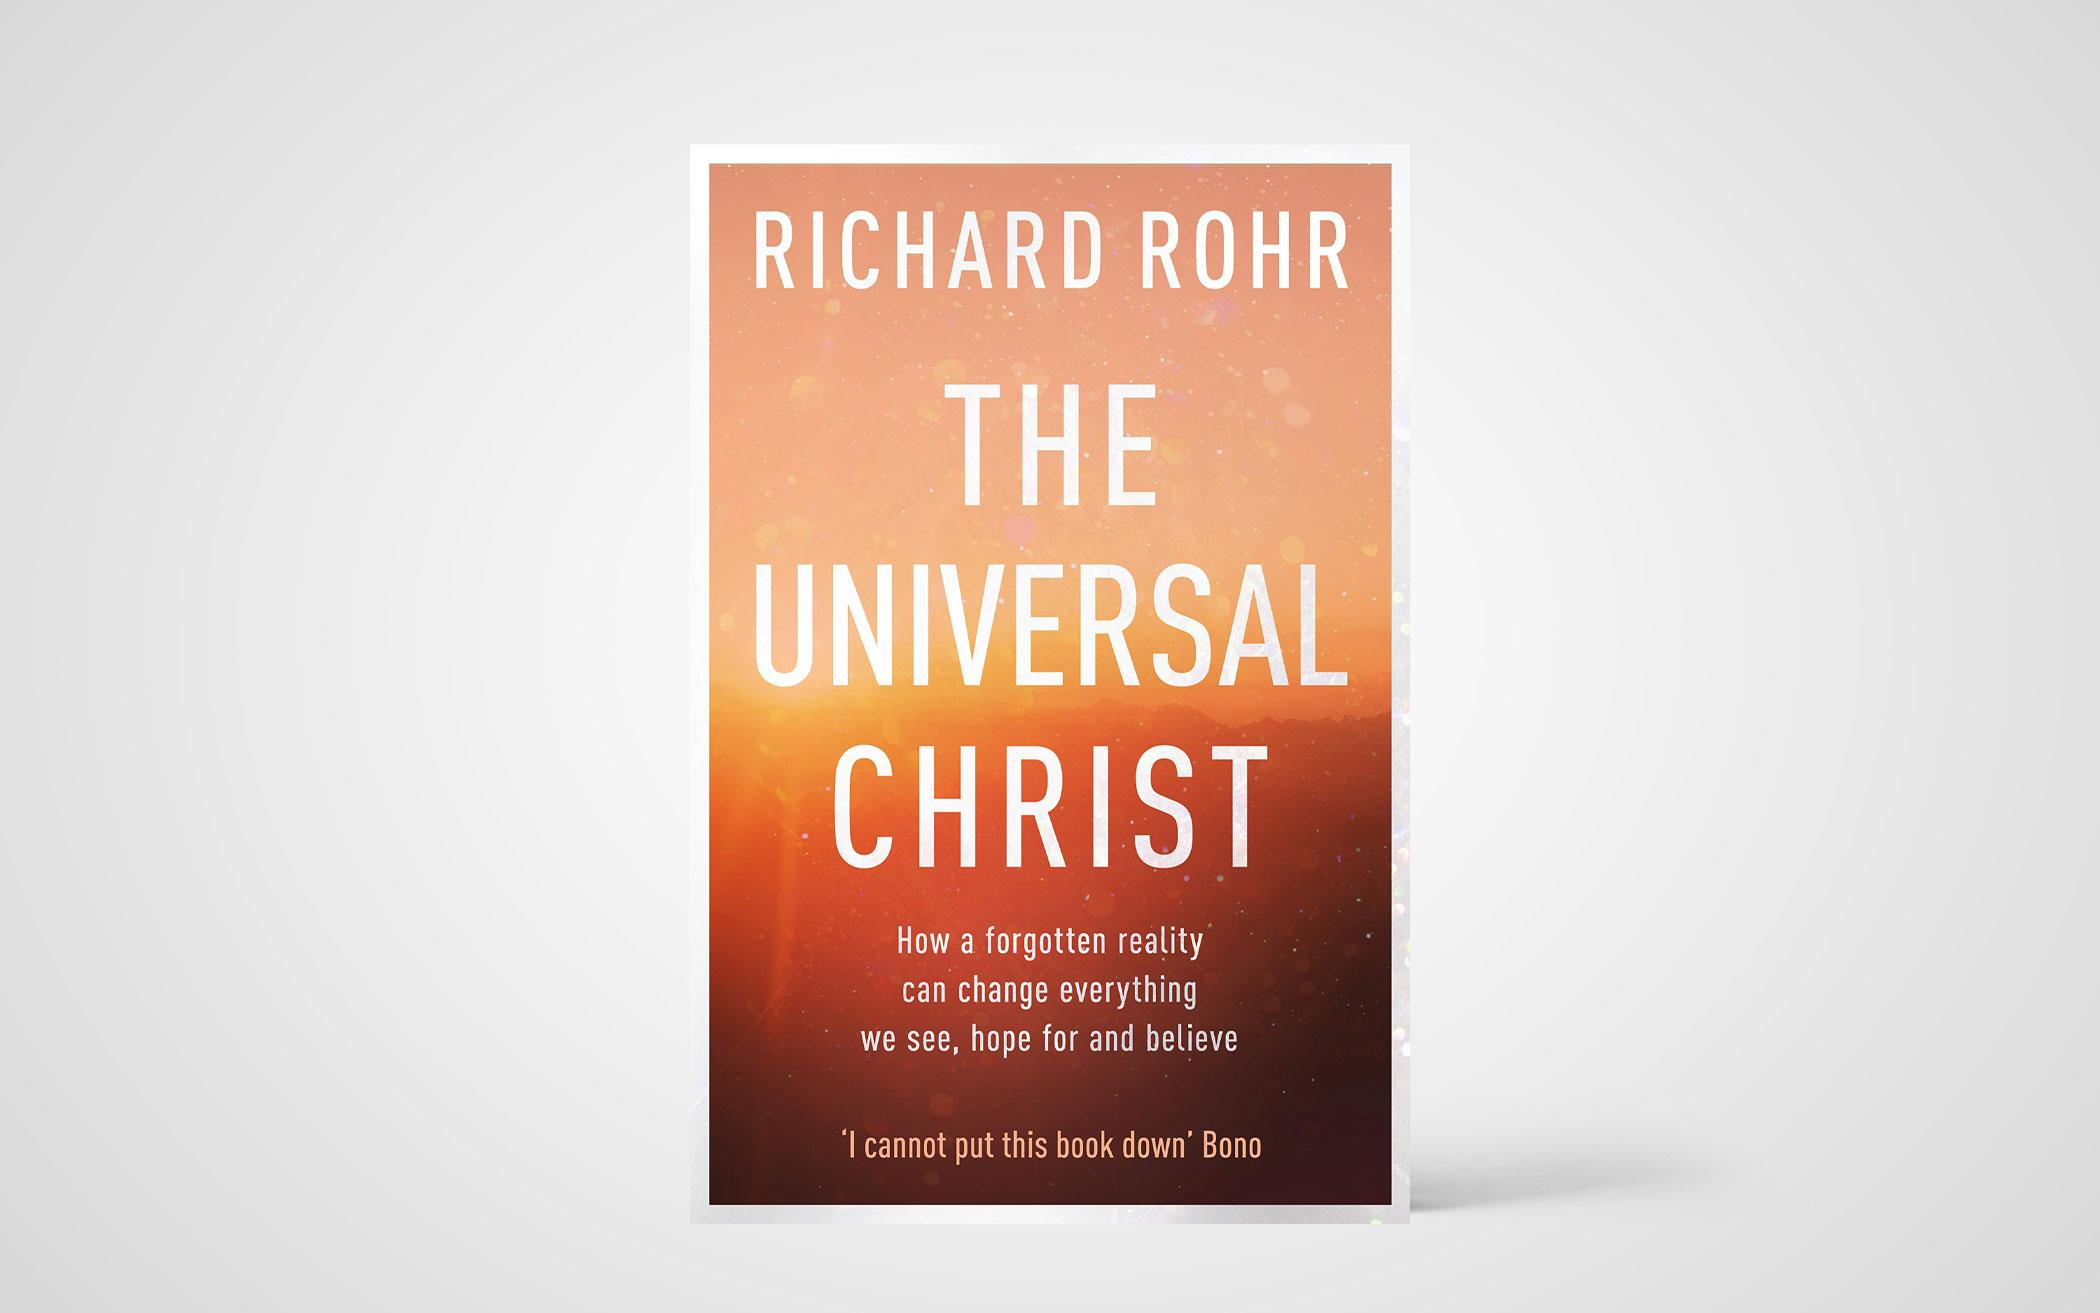 The Universal Christ: How a Forgotten Reality Can Change Everything We See, Hope For, and Believe by Richard Rohr